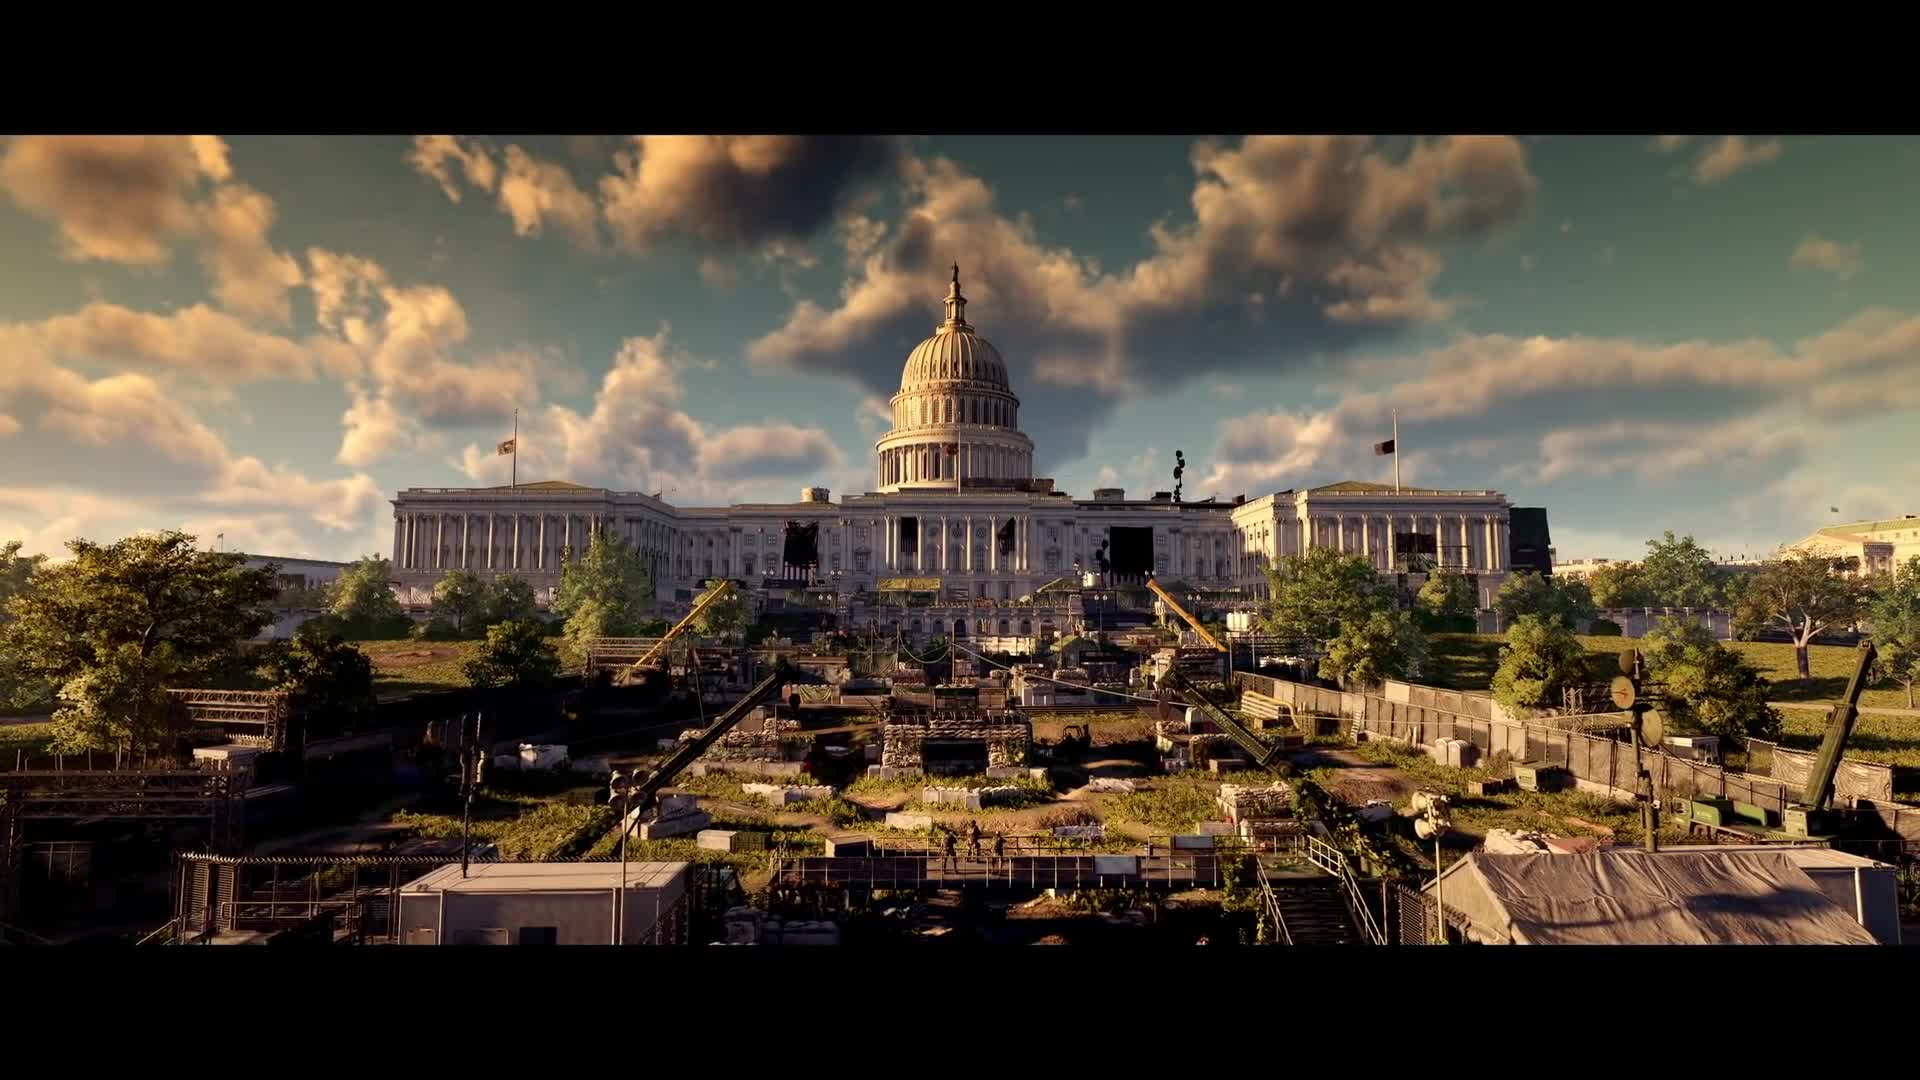 Trailer, Ubisoft, actionspiel, Tom Clancy, Tom Clancy's The Division, The Division 2